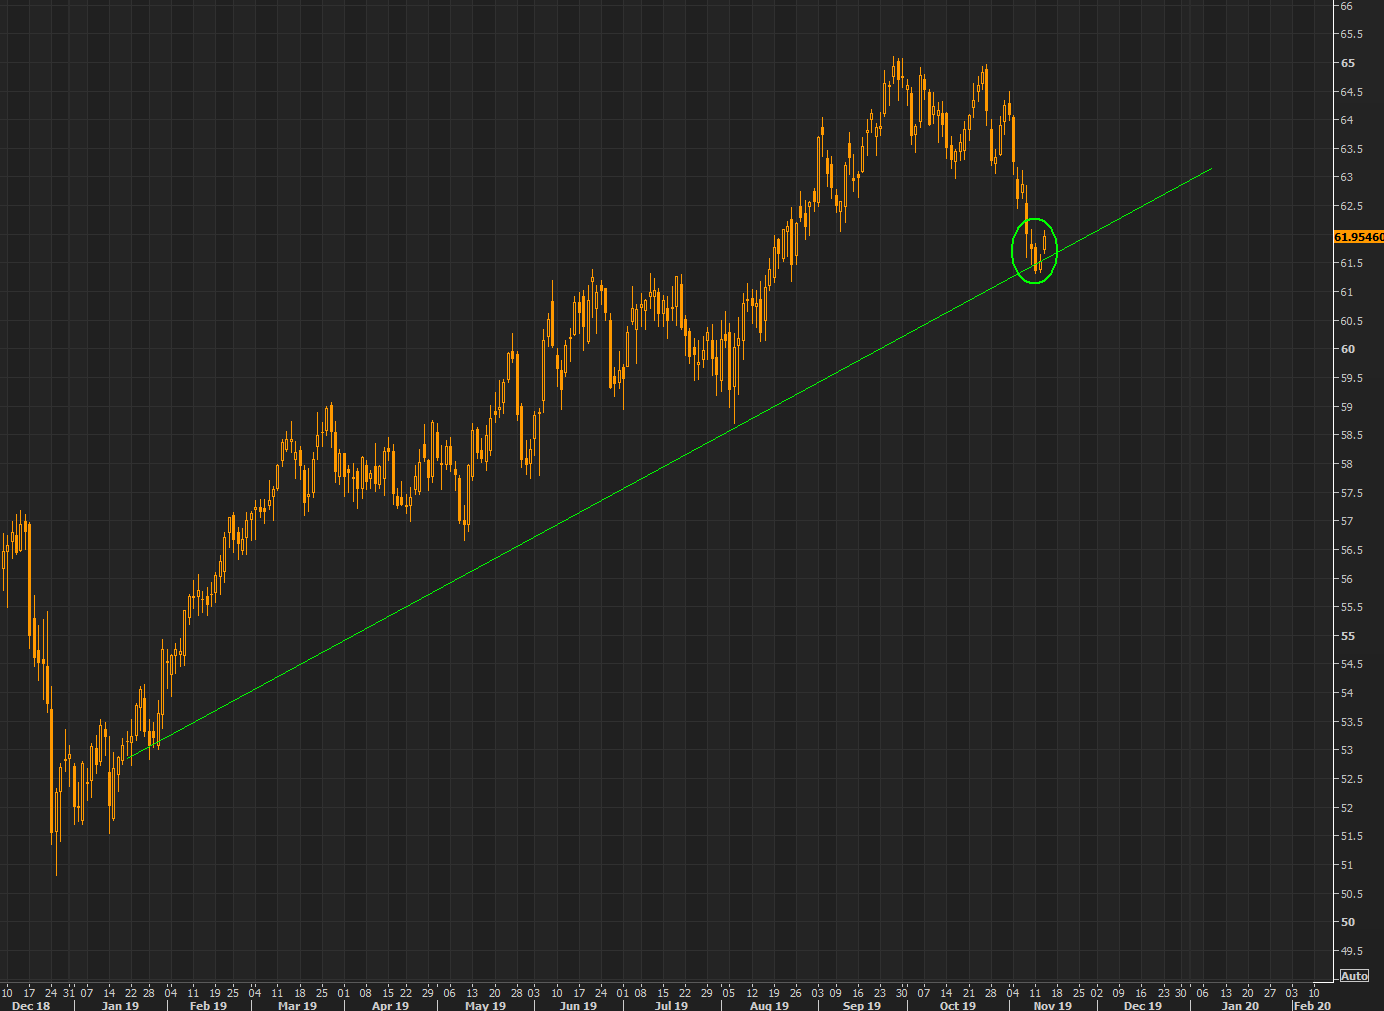 XLU  - bouncing right on the longer term trend as yields move lower